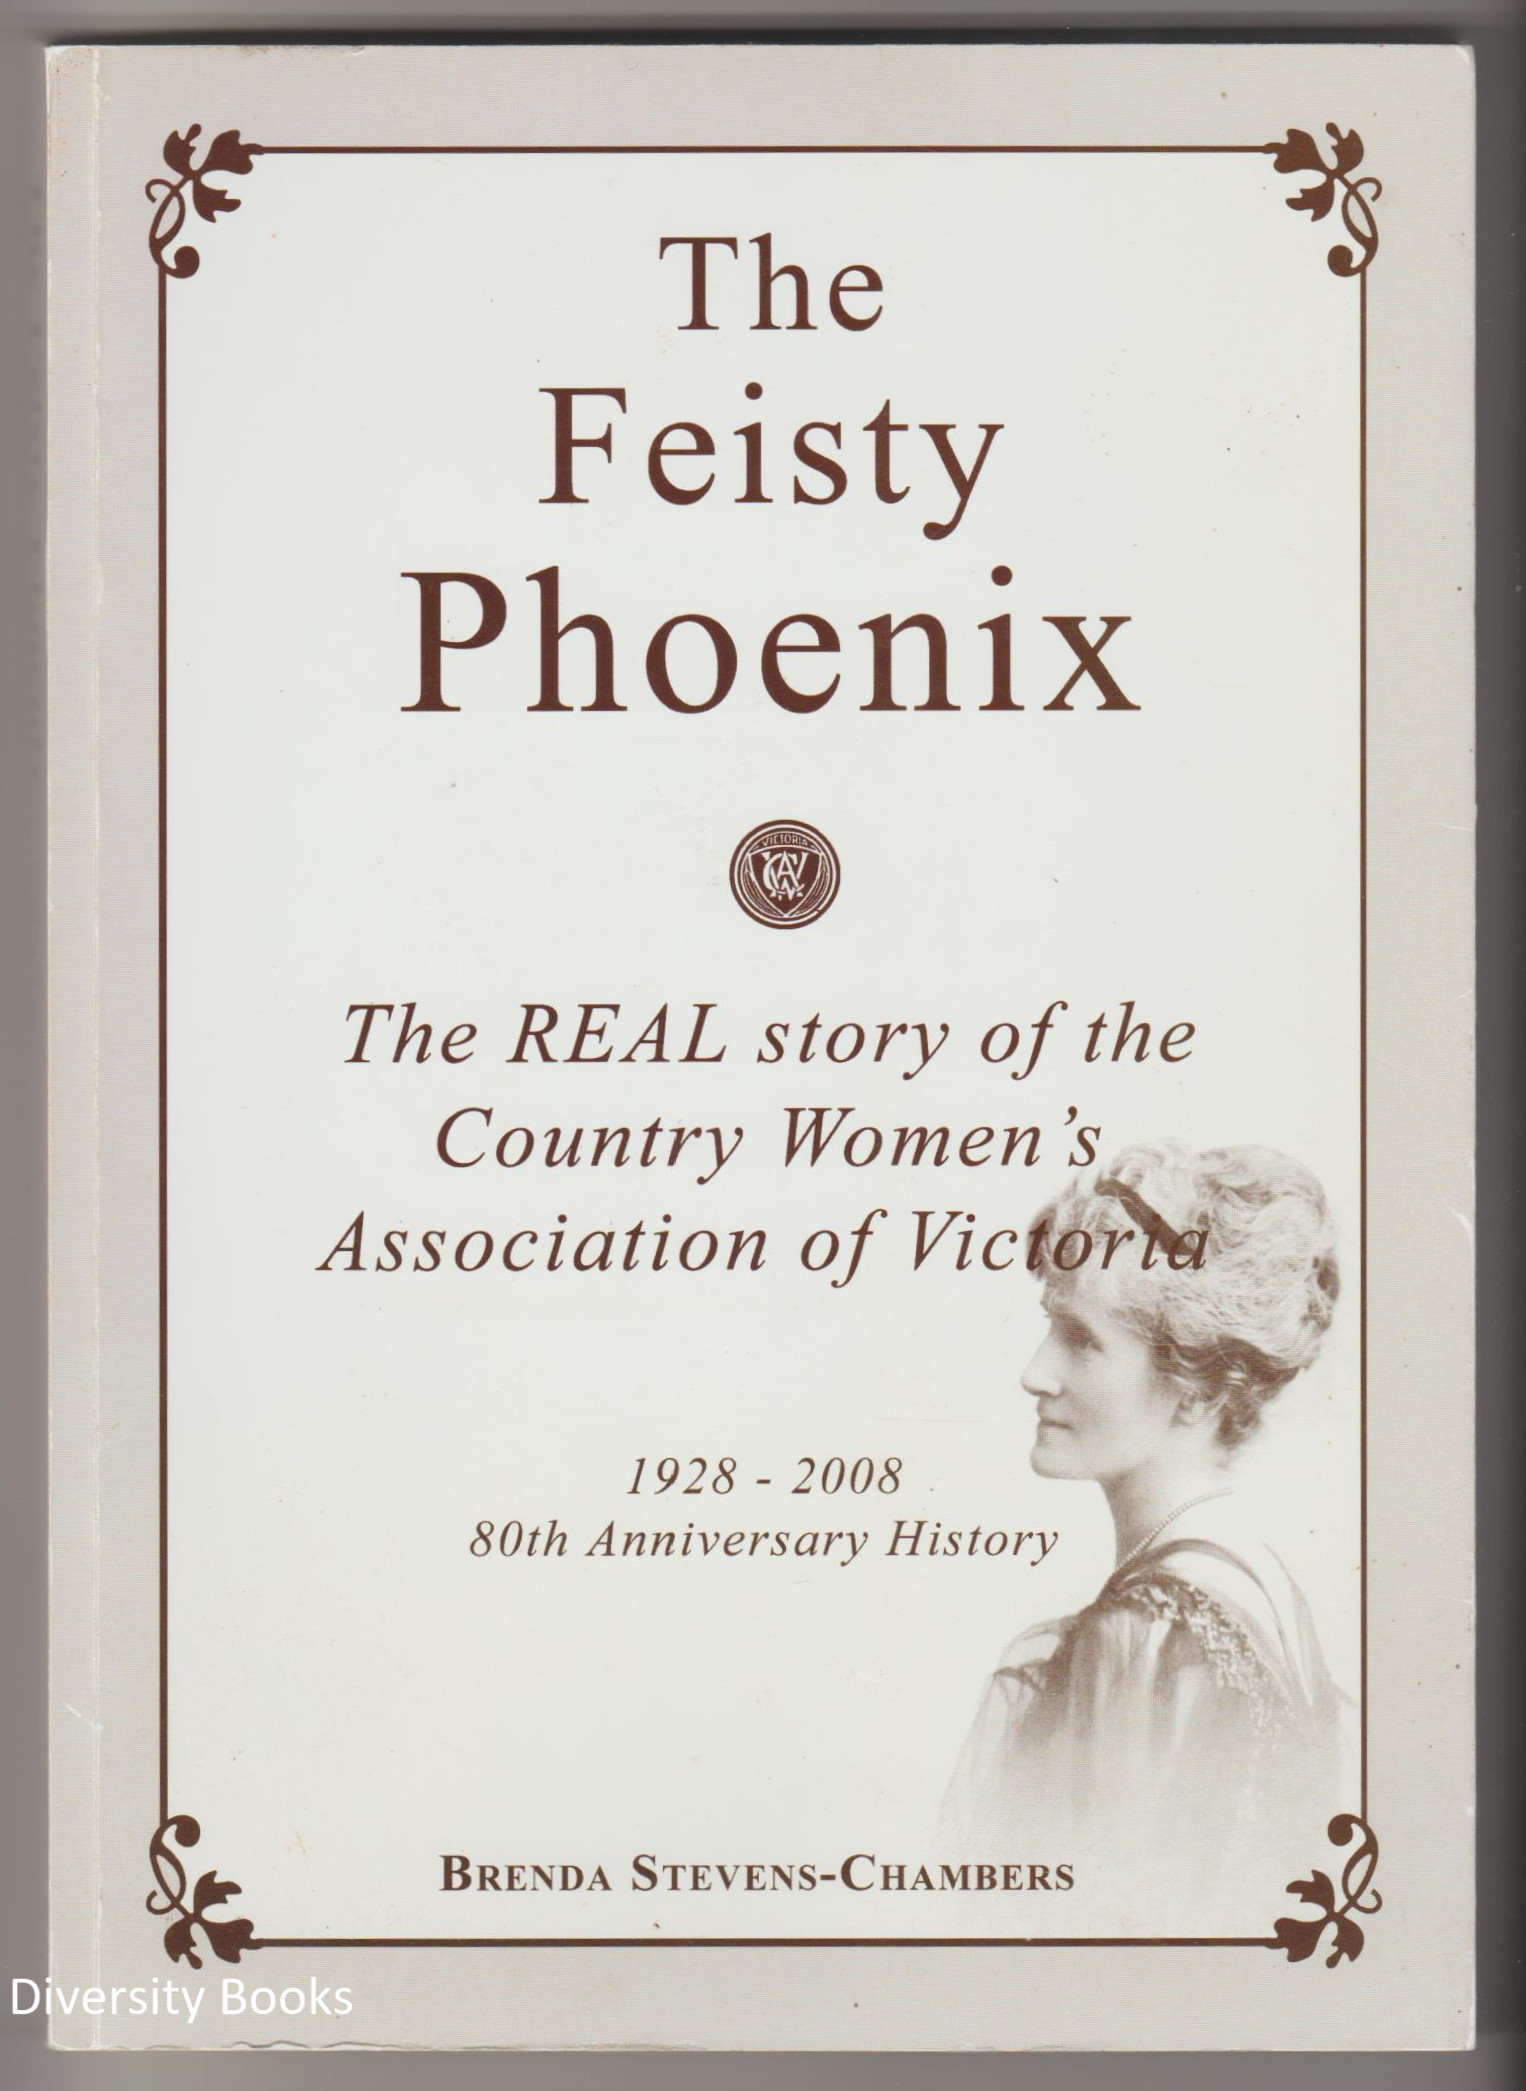 Image for THE FEISTY PHOENIX: The Real Story of the Country Women's Association of Victoria 1928-2008. 80th Anniversary History